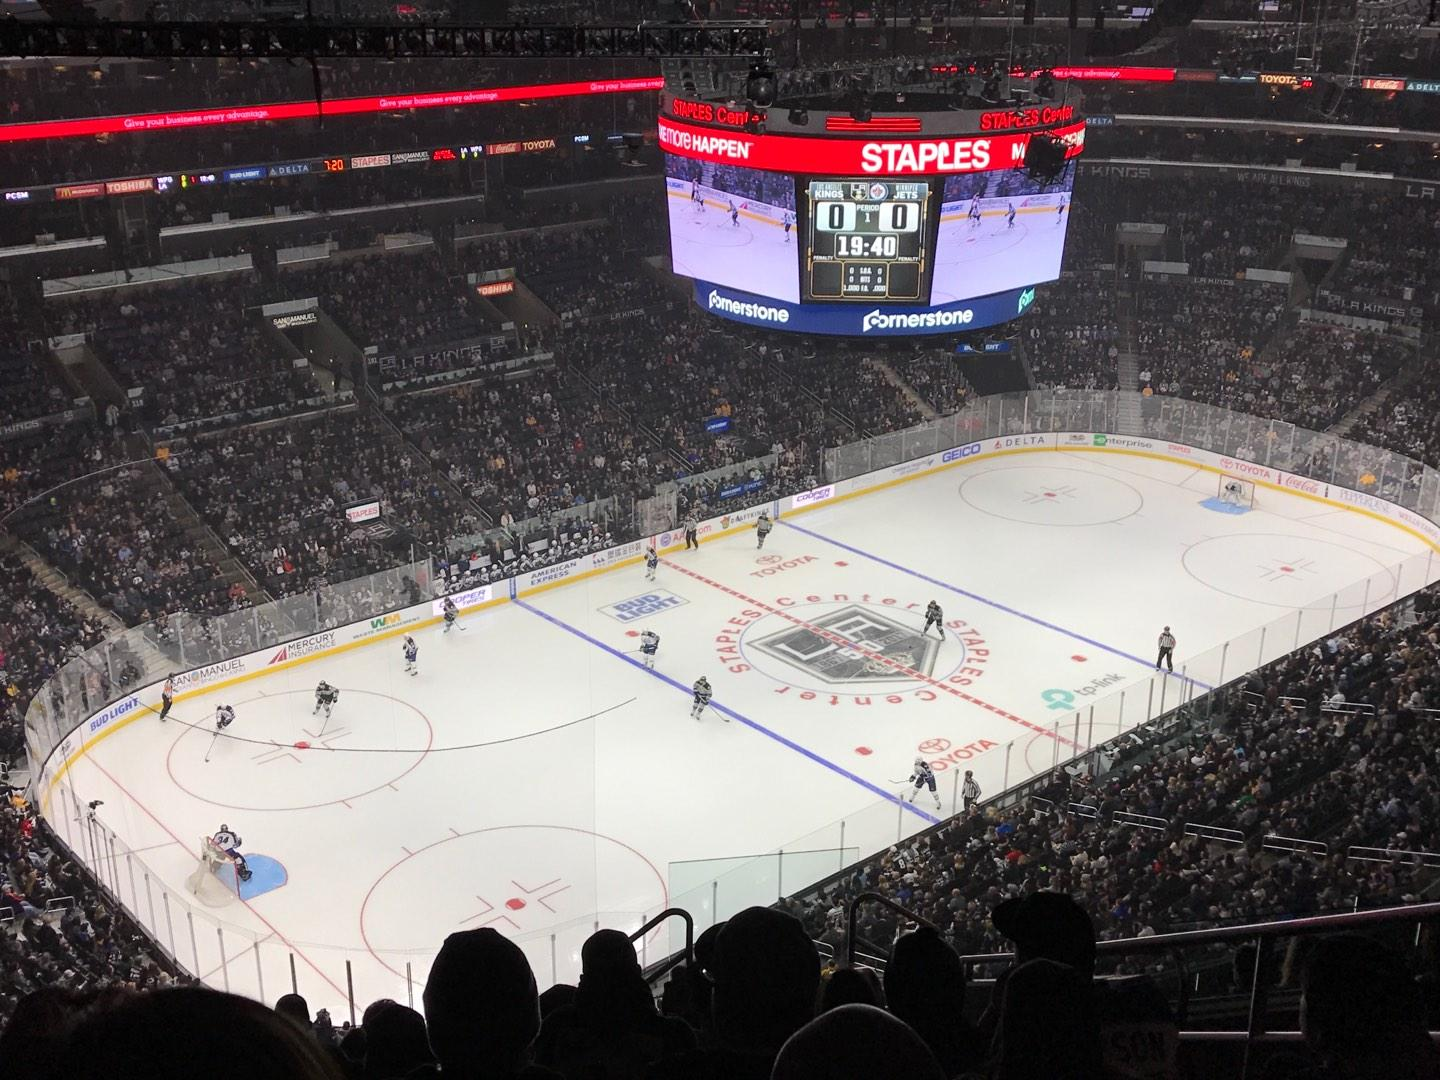 Staples Center Section 322 Row 12 Seat 6